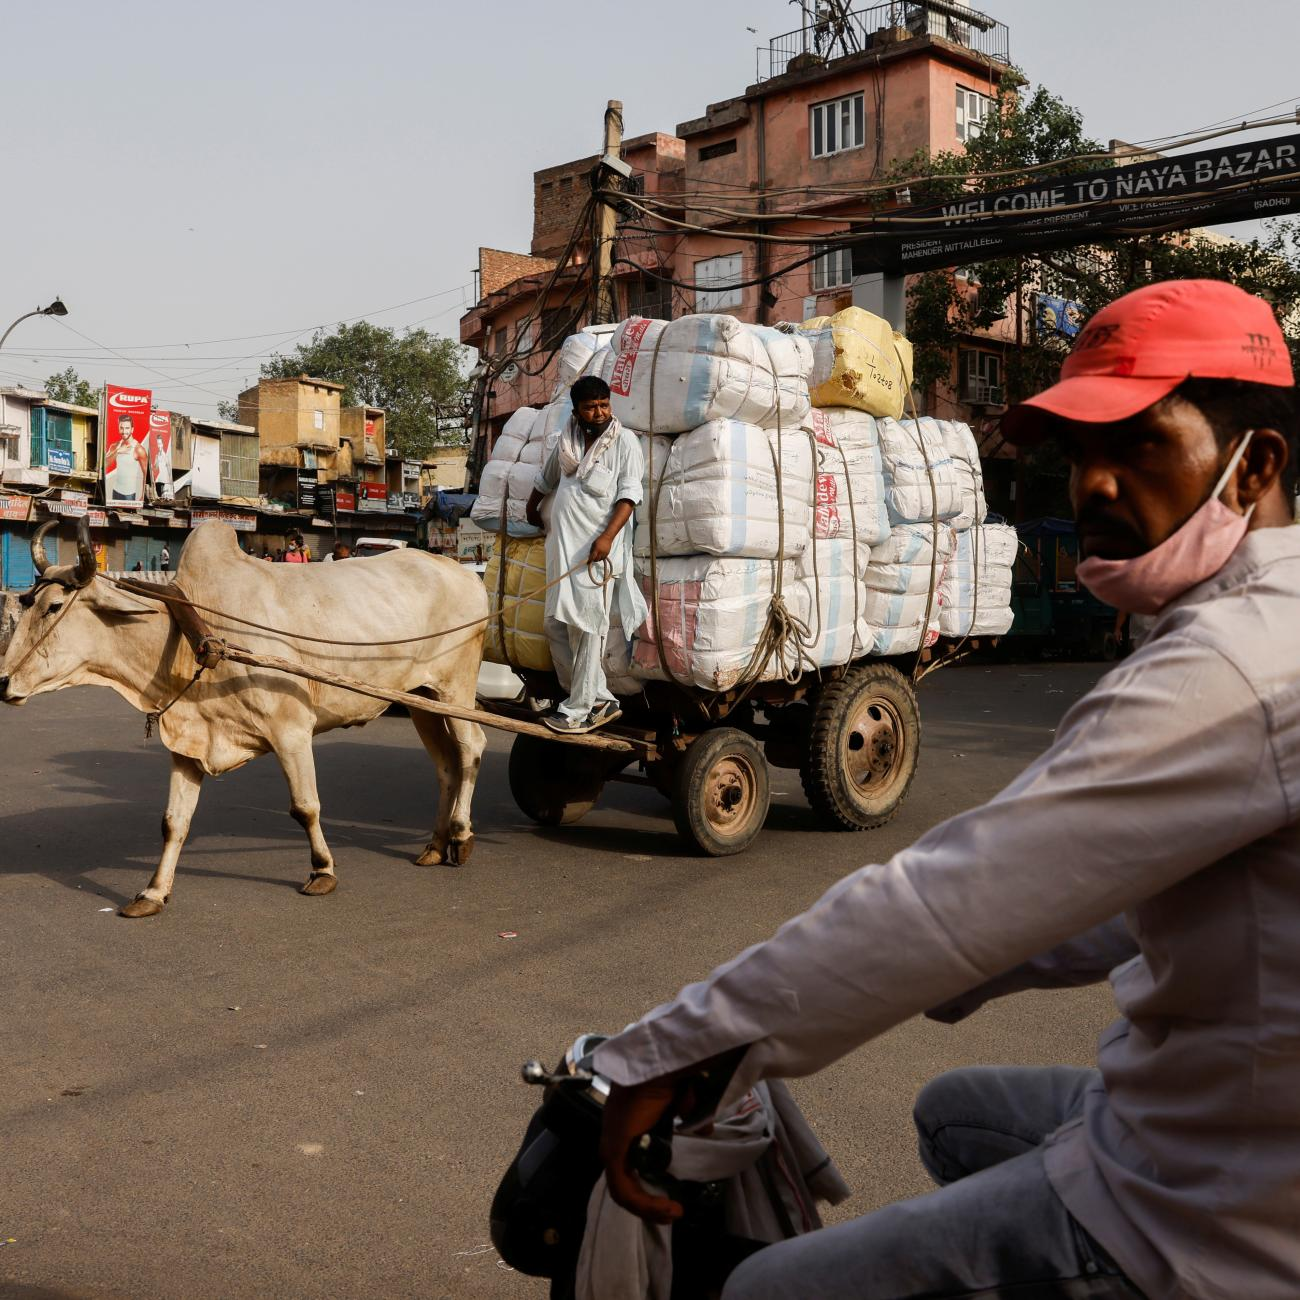 A man rides a motorcycle in front of a worker transporting sacks of spices loaded on a bullock cart at a wholesale market in the old quarters of Delhi, India.